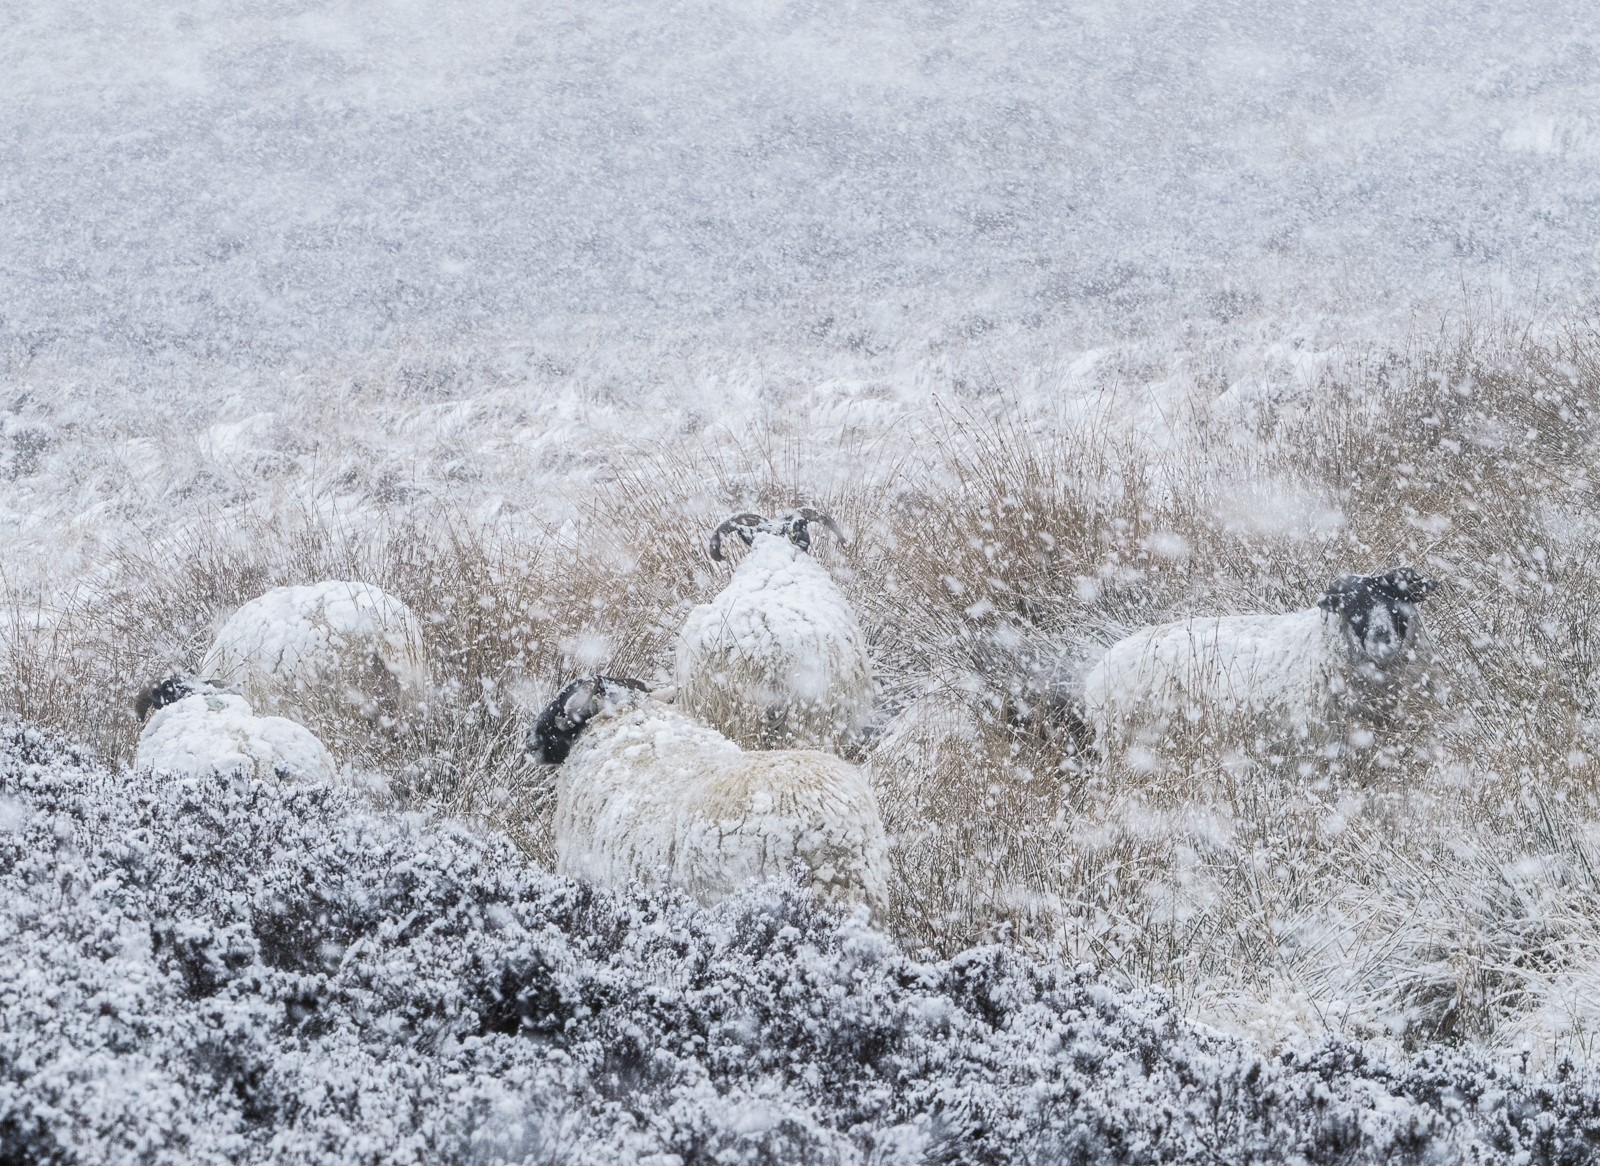 Sheep in the snow.jpg